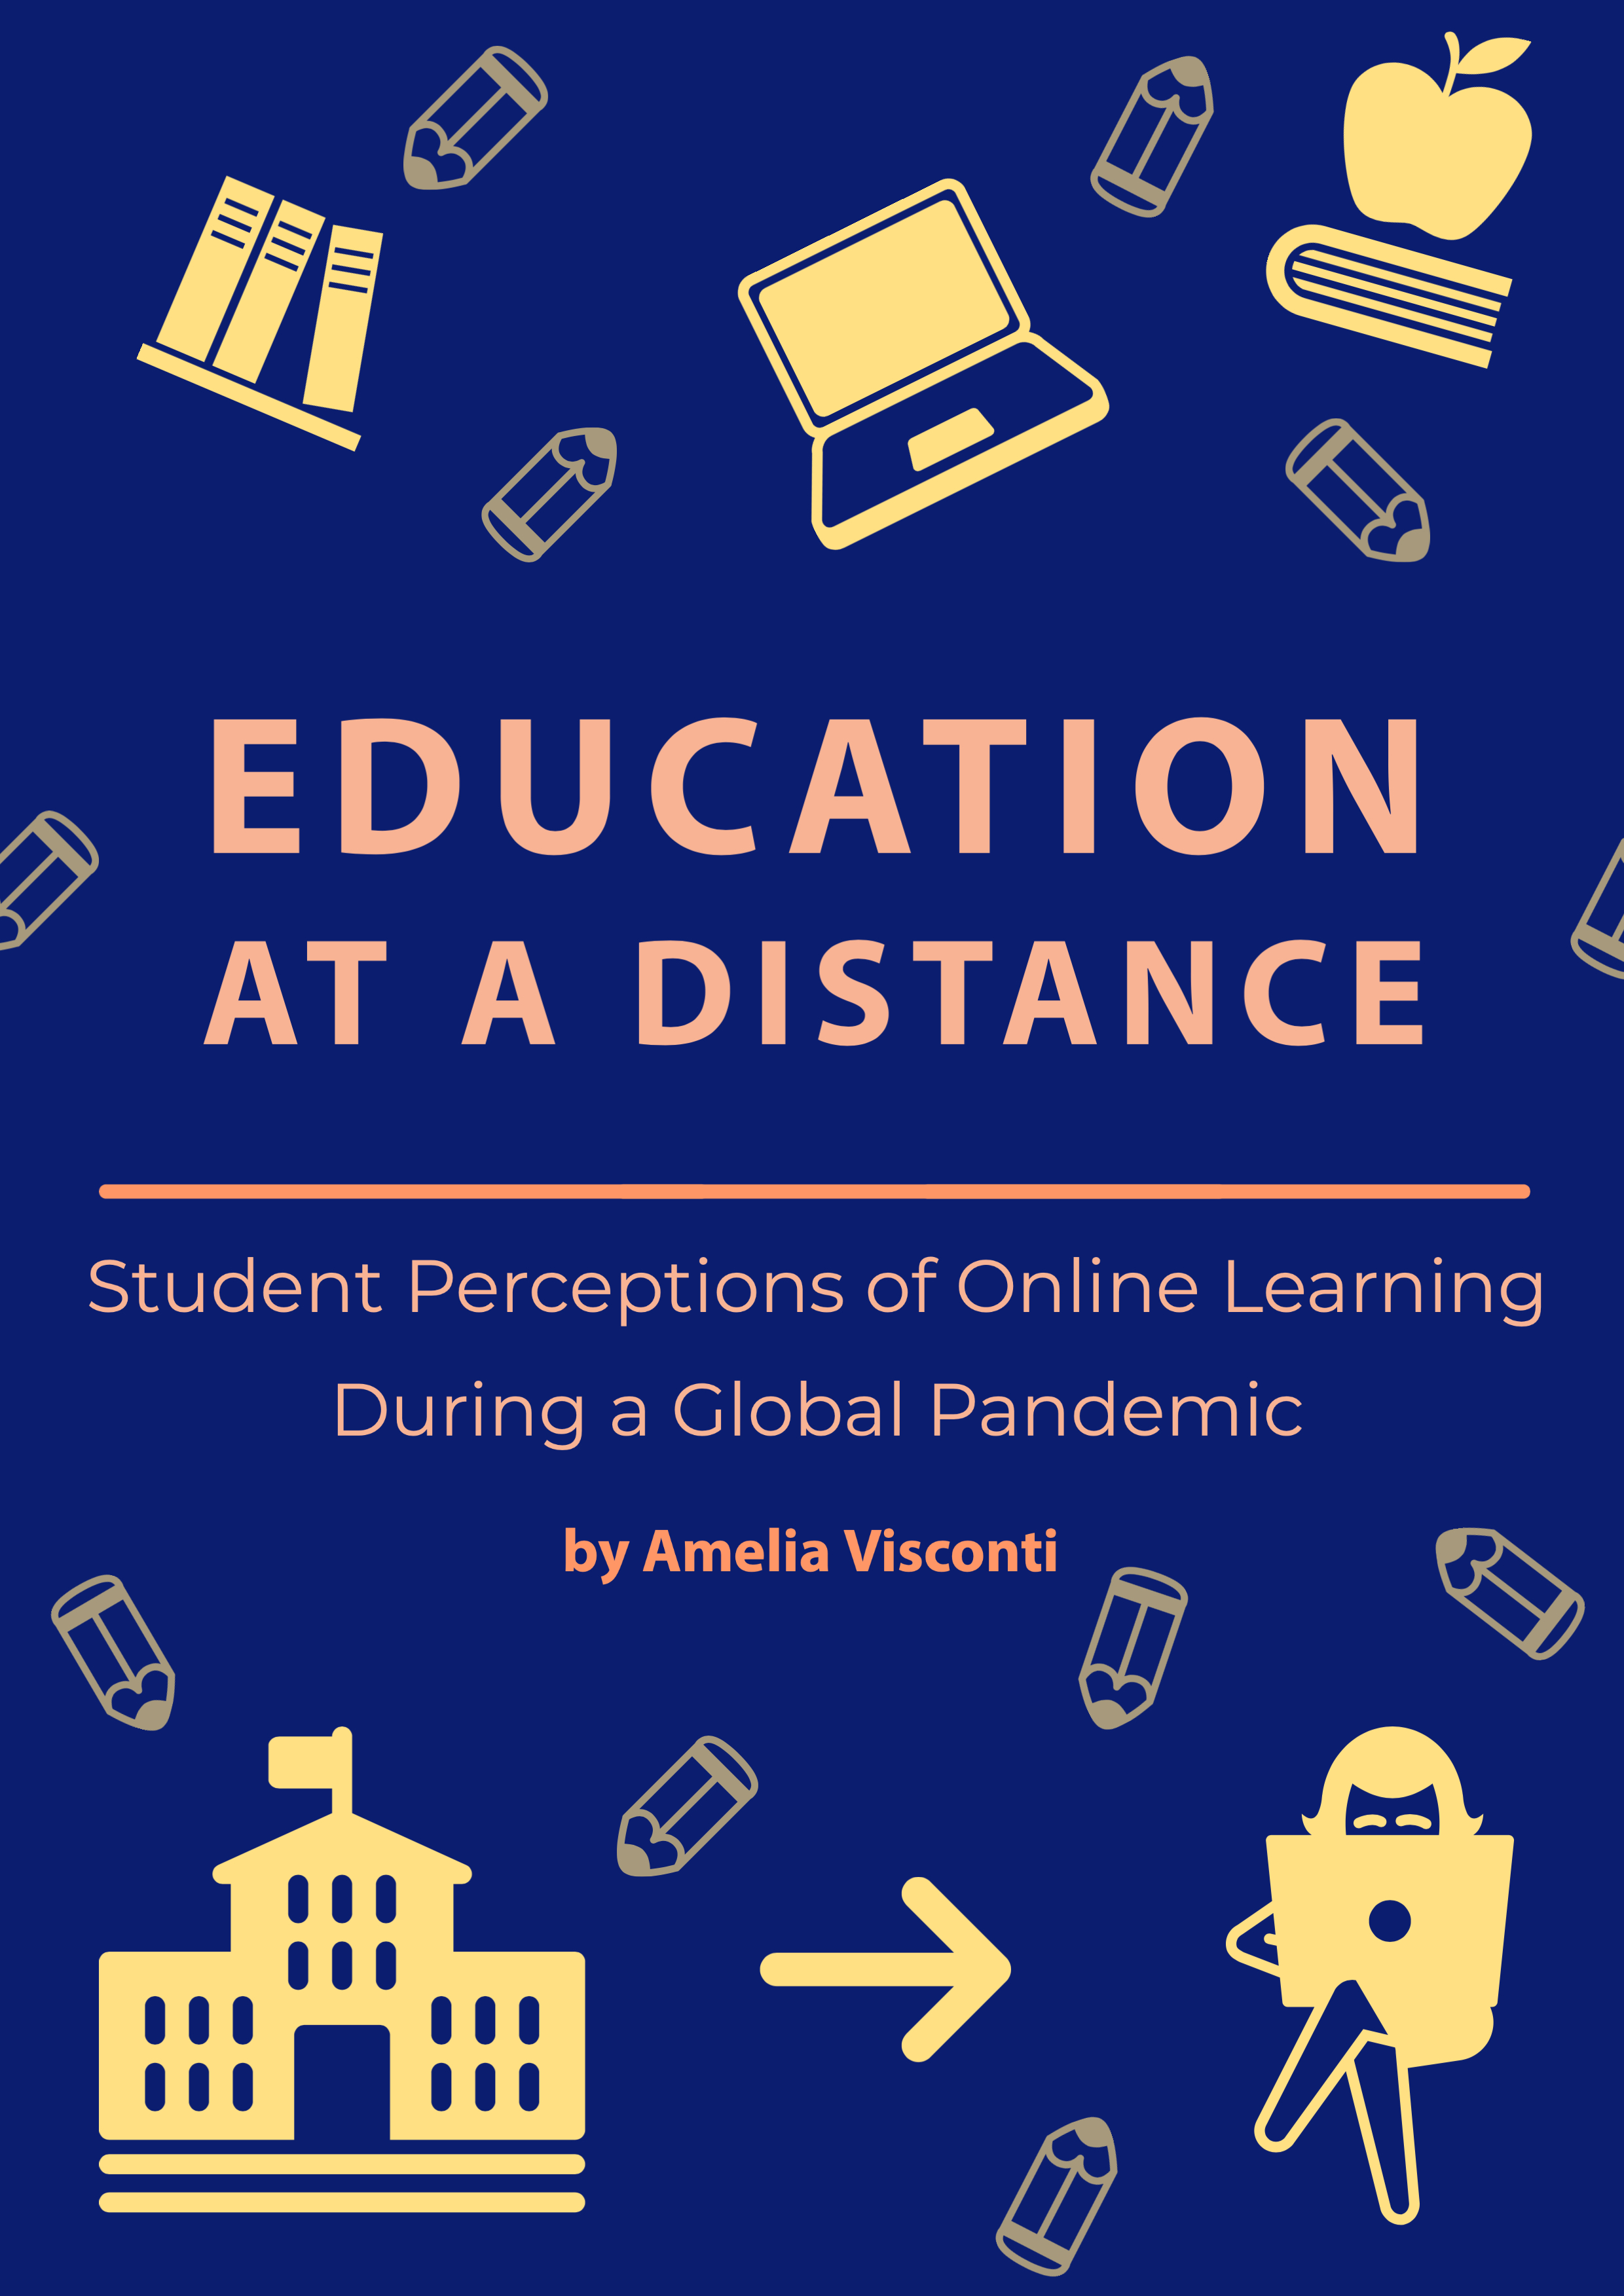 Education at a Distance: Student Perceptions of Online Learning During a Global Pandemic